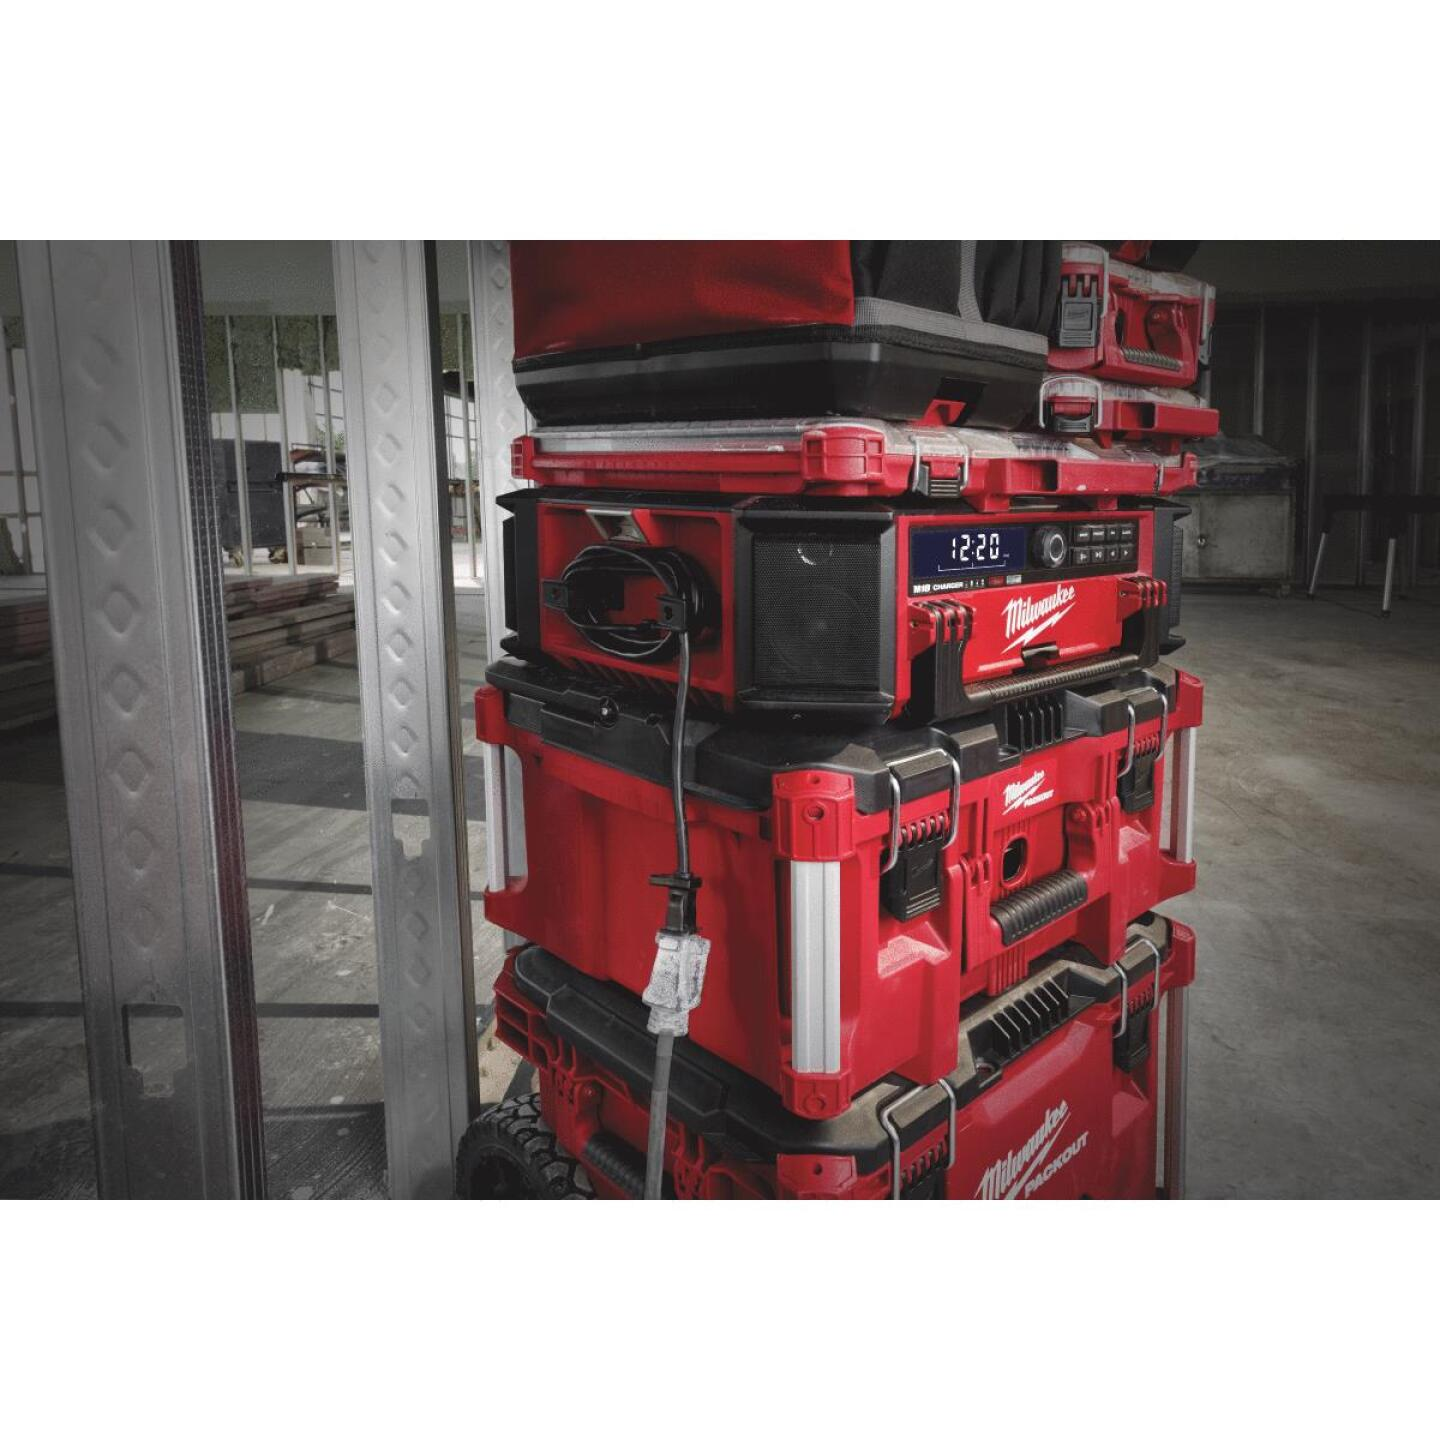 Milwaukee M18 PACKOUT 18 Volt Lithium-Ion Cordless Jobsite Radio and Battery Charger Image 2